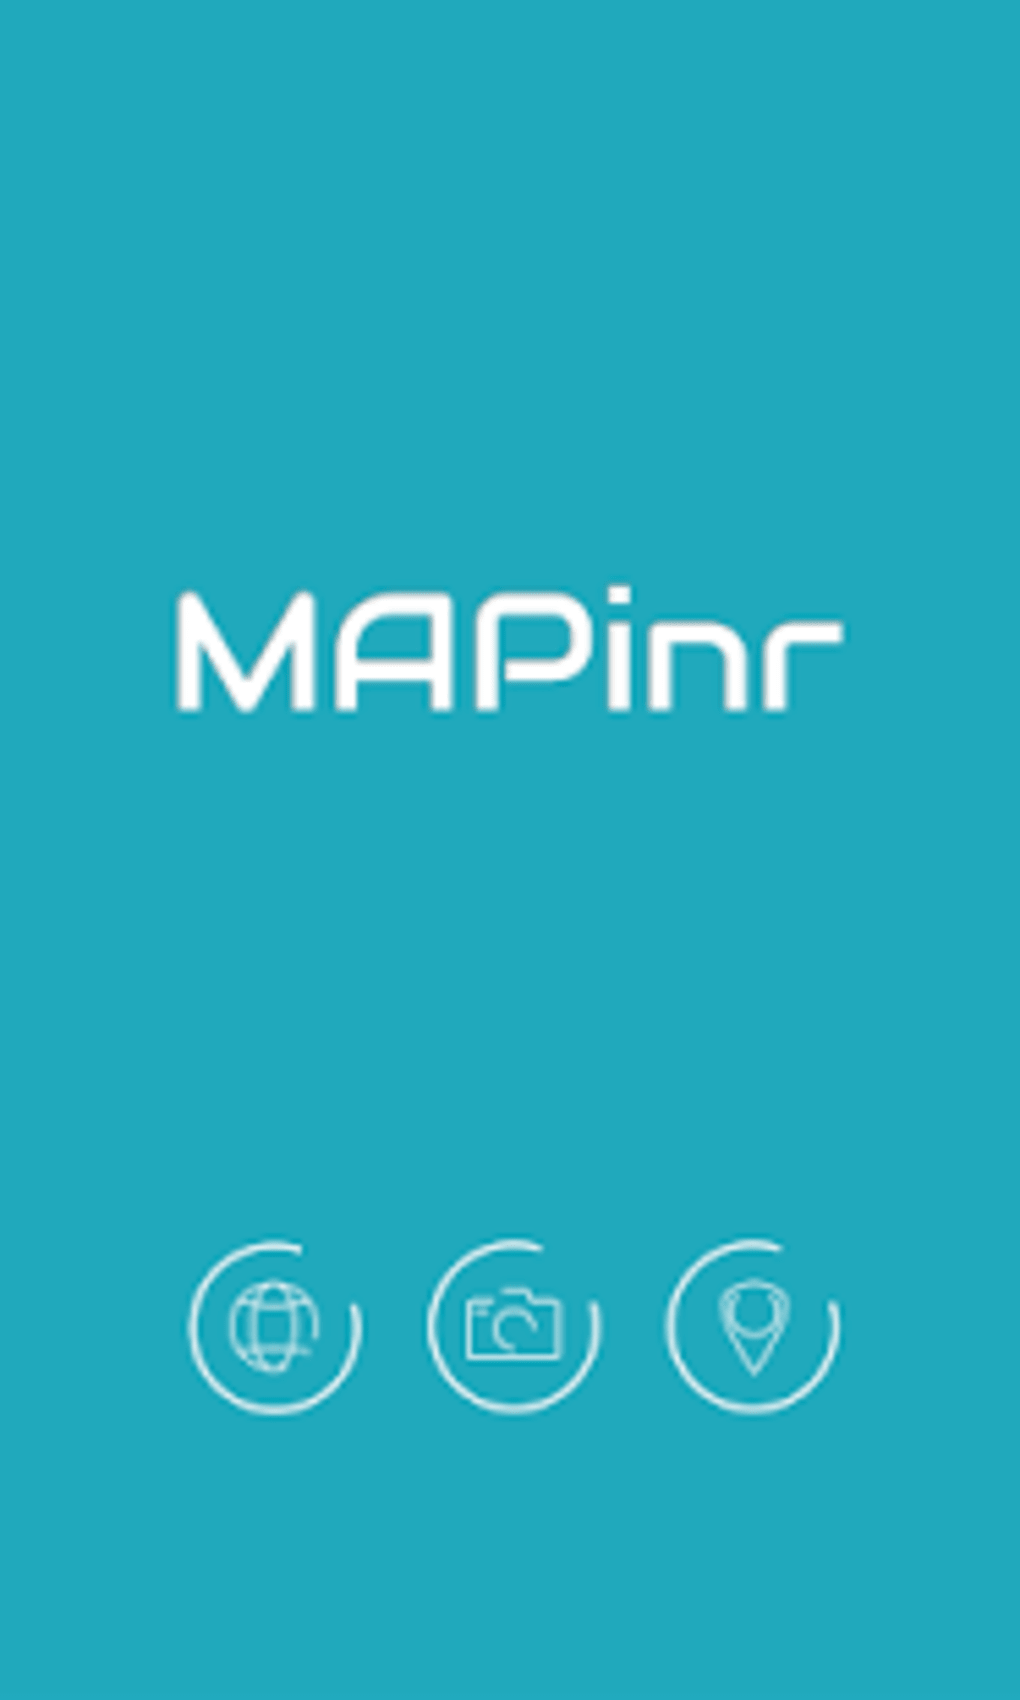 MAPinr-KML/KMZ/GPS/POI/OFFLINE for Android - Download